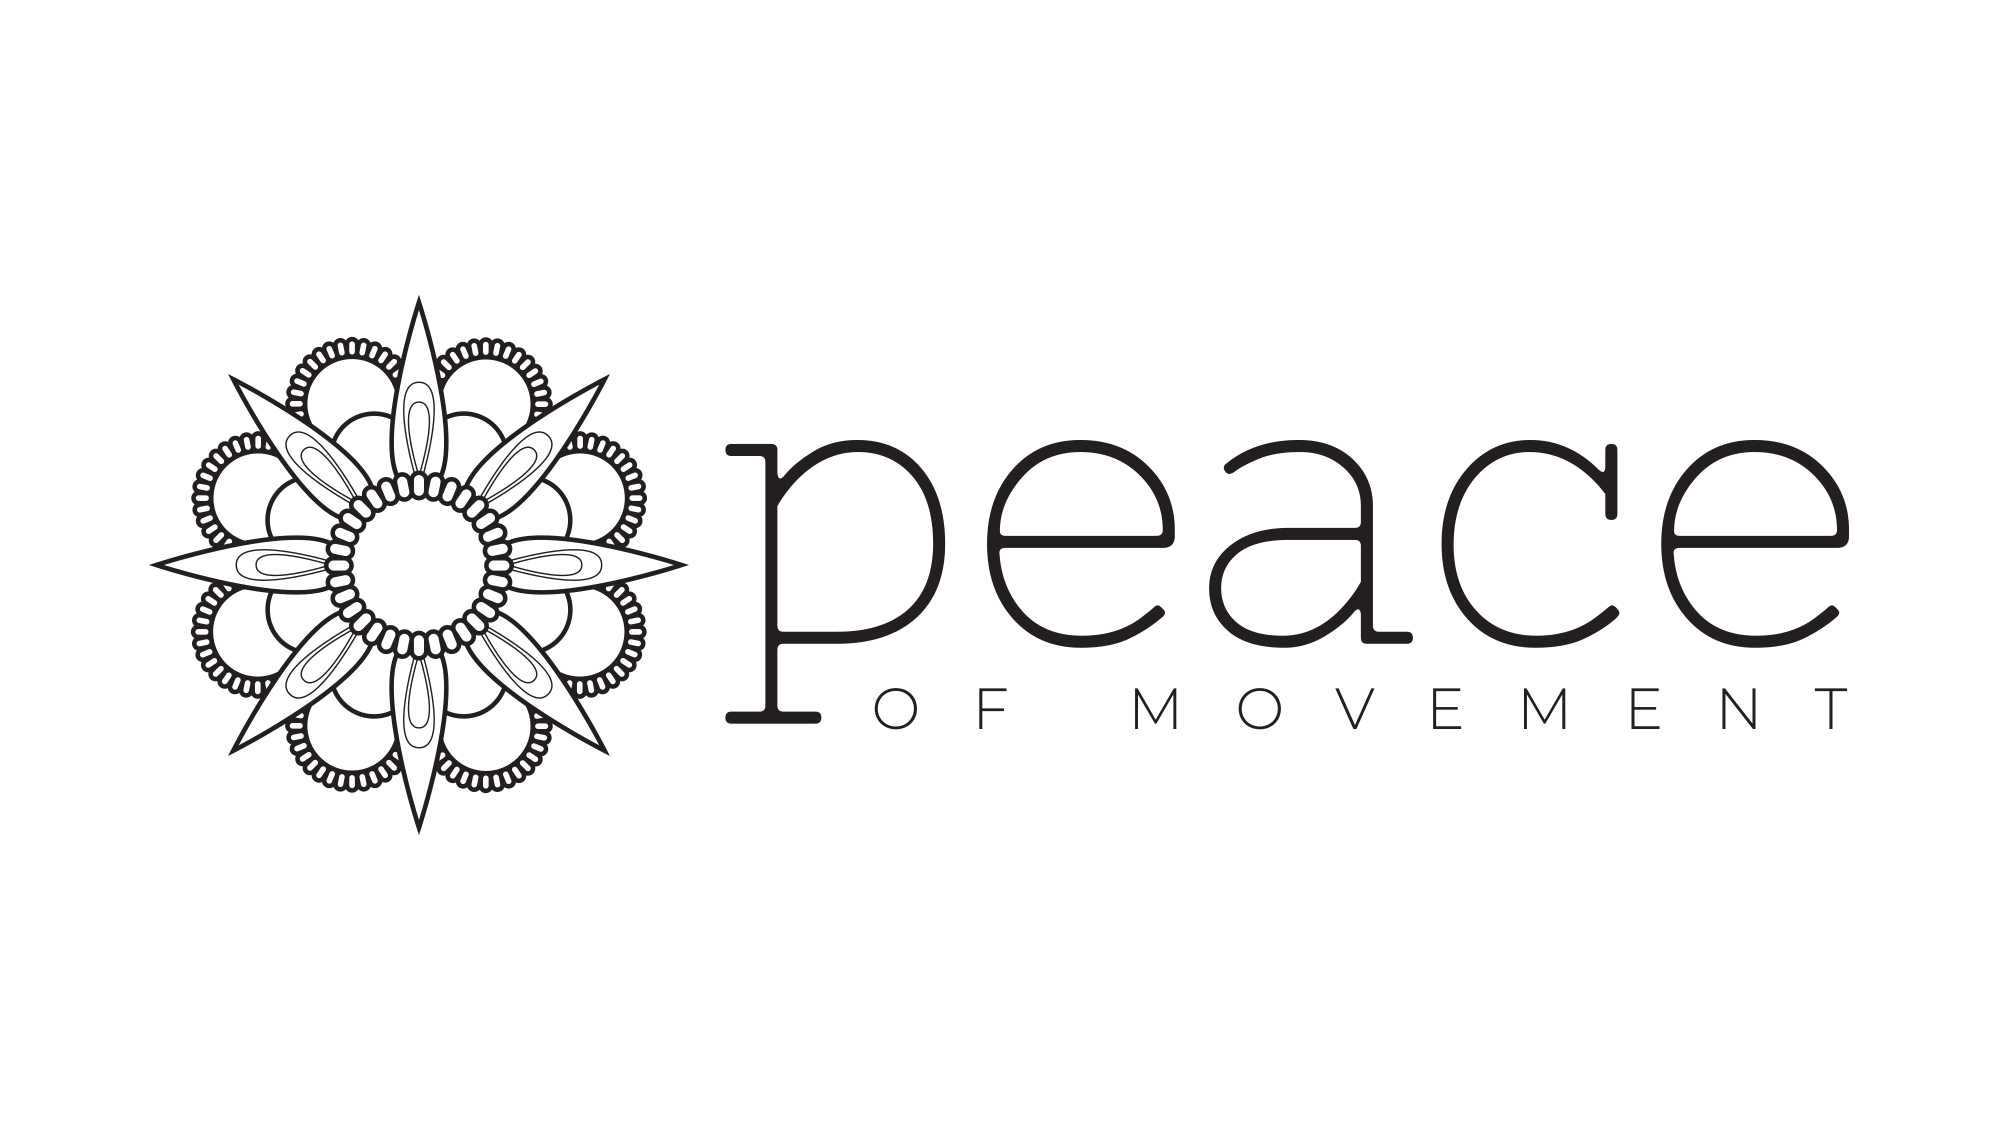 Peace of Movement Logo